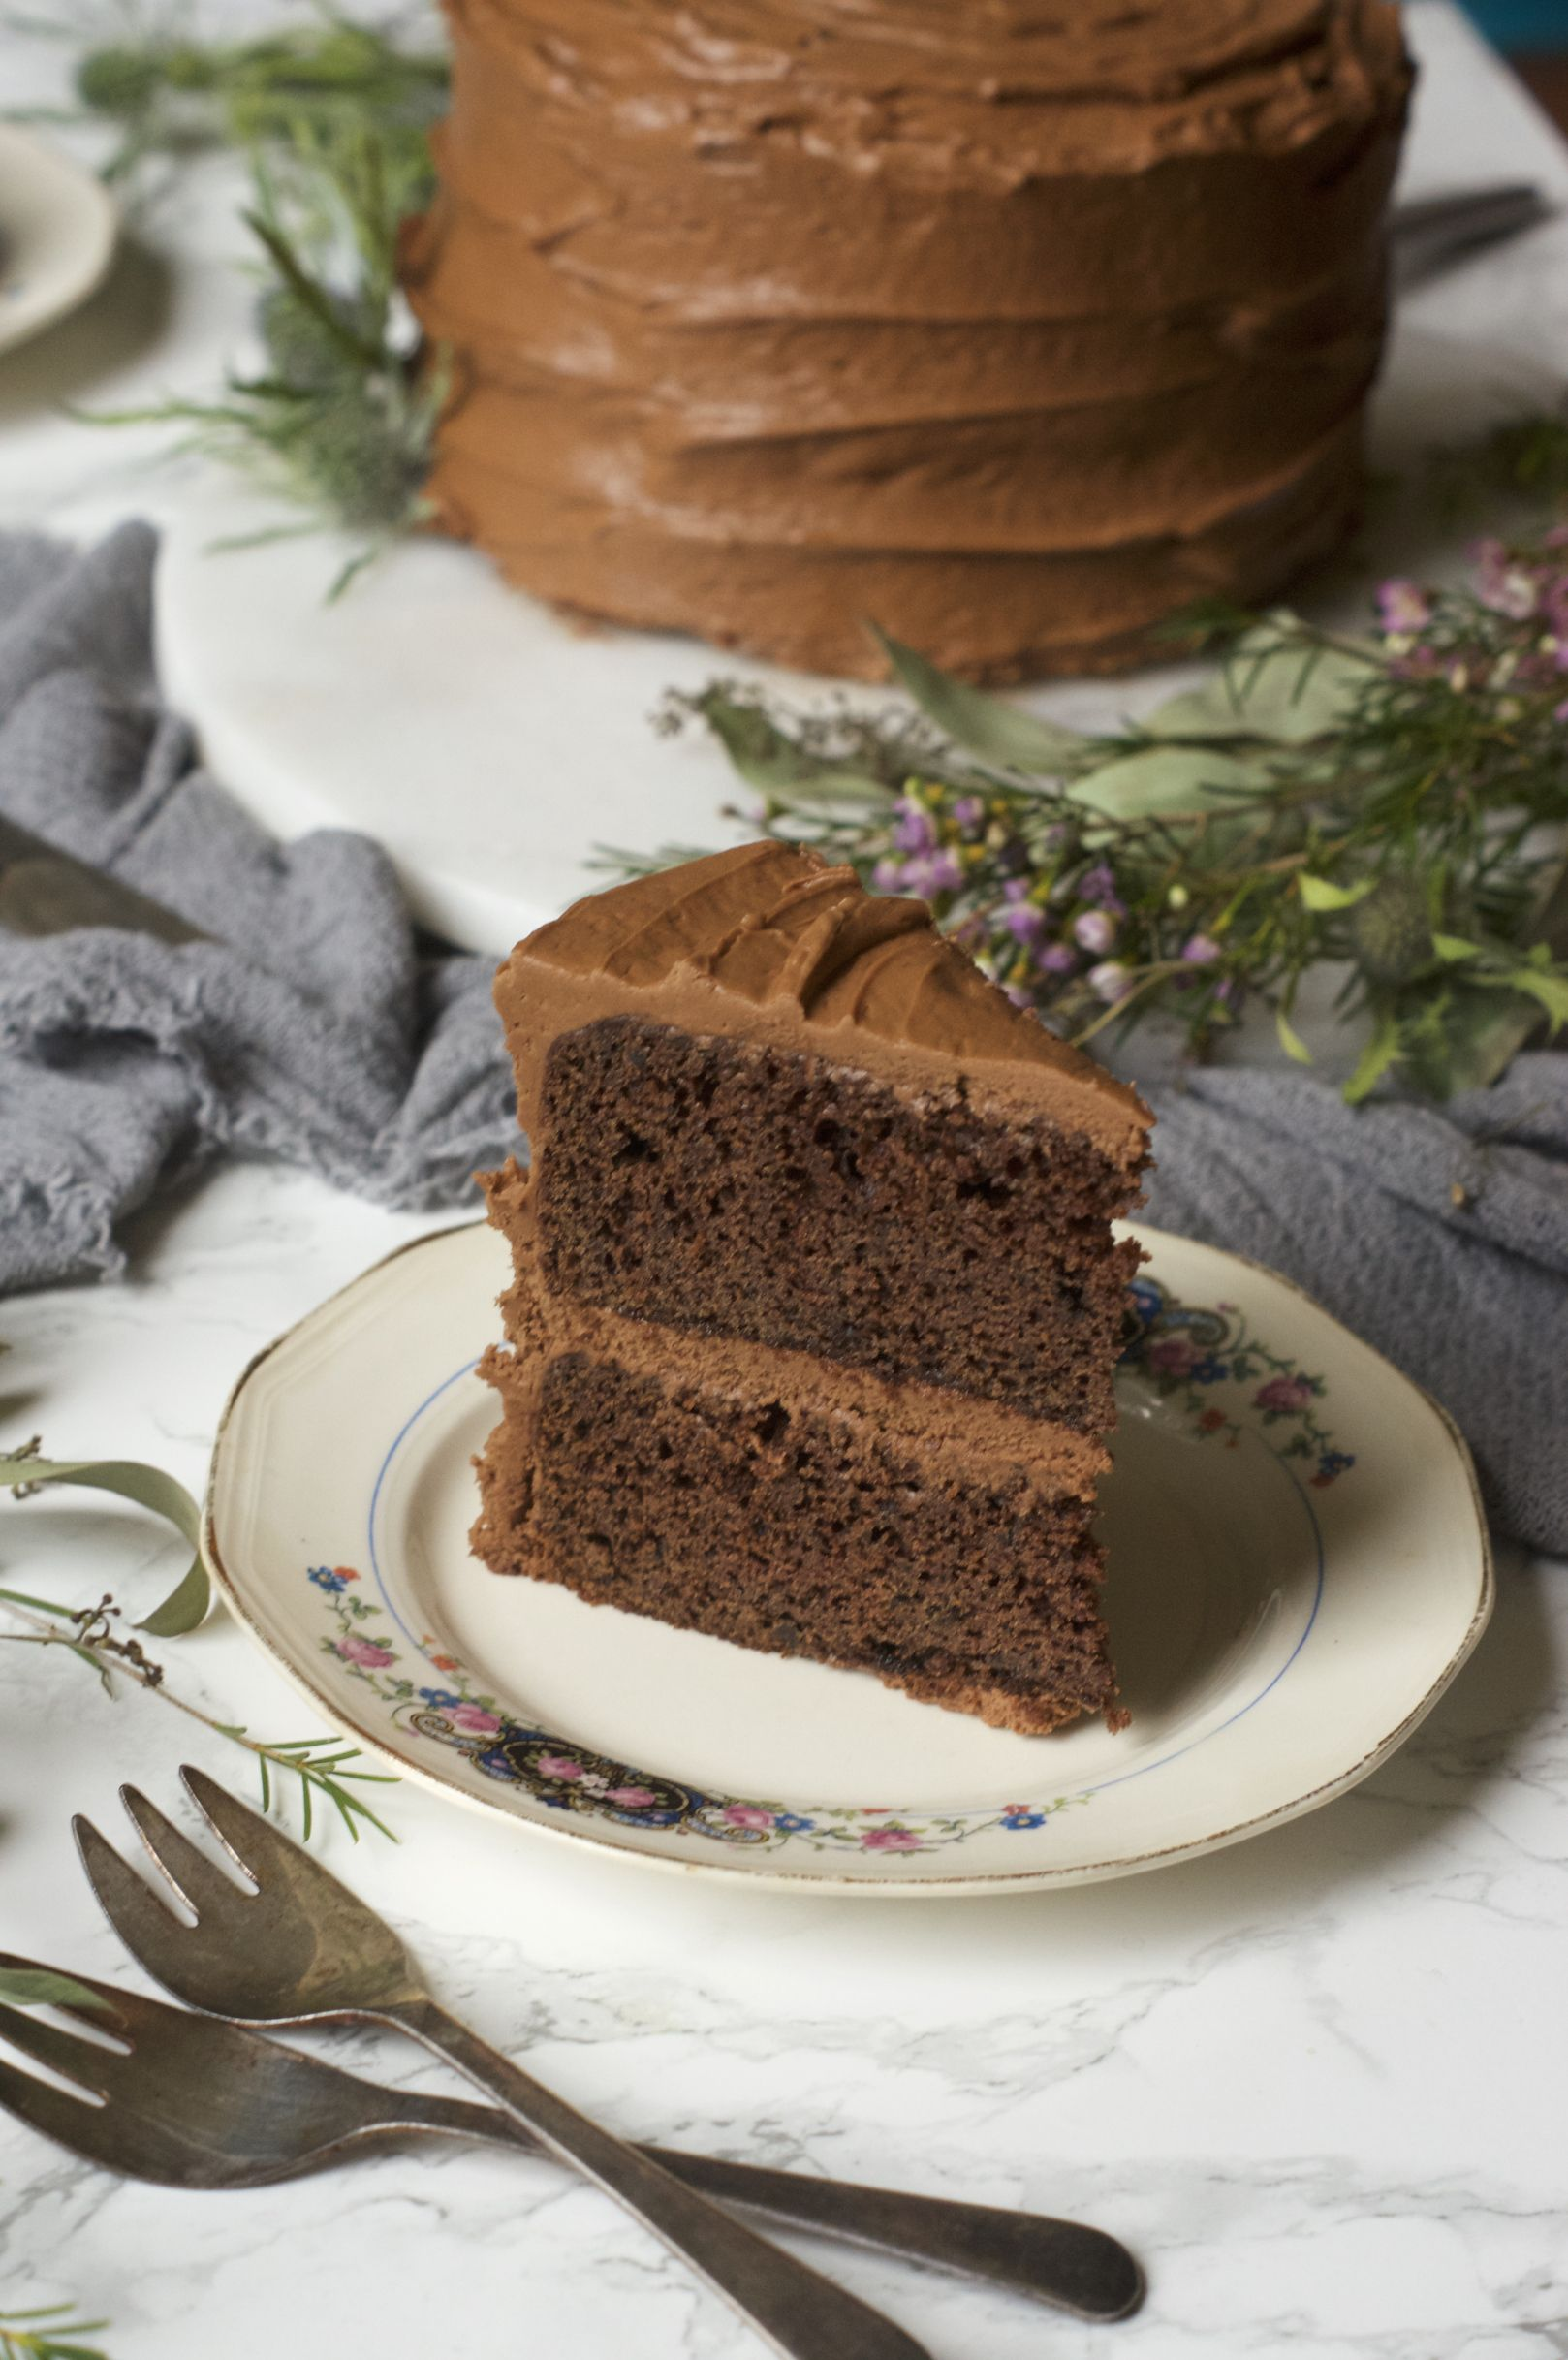 Chocolate cake for one or two tastes homemade cakes